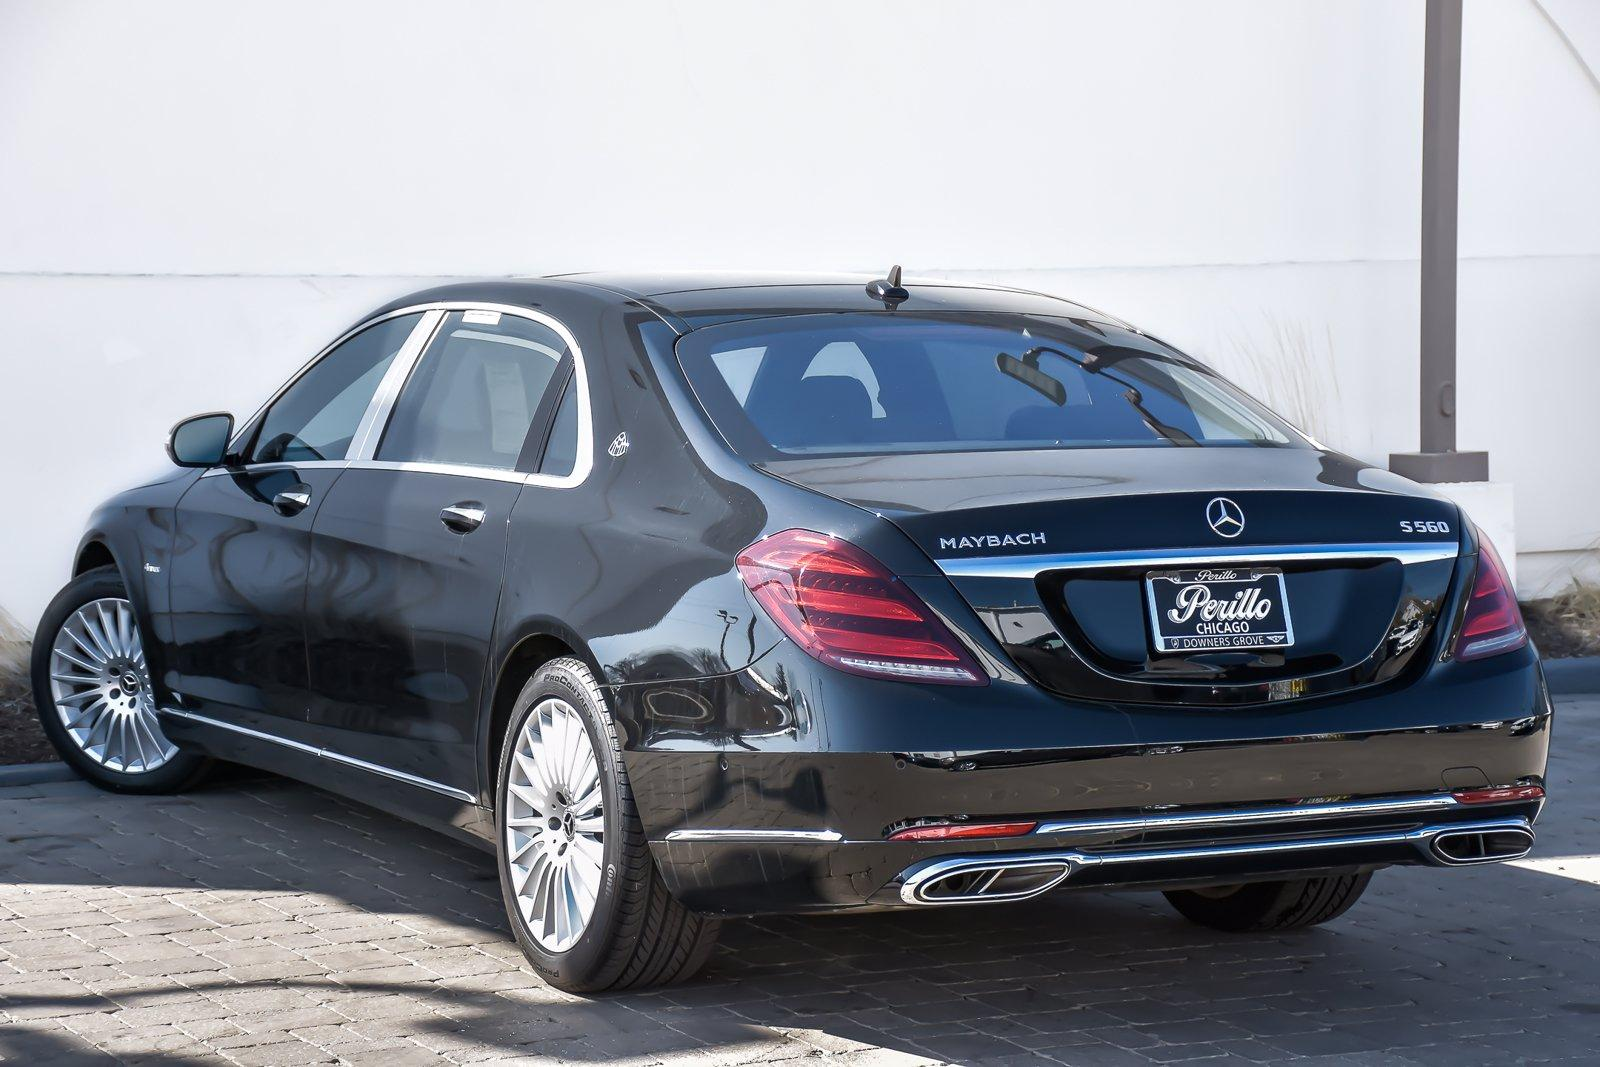 Used 2018 Mercedes-Benz S-Class Maybach S 560, Rear Ent, | Downers Grove, IL